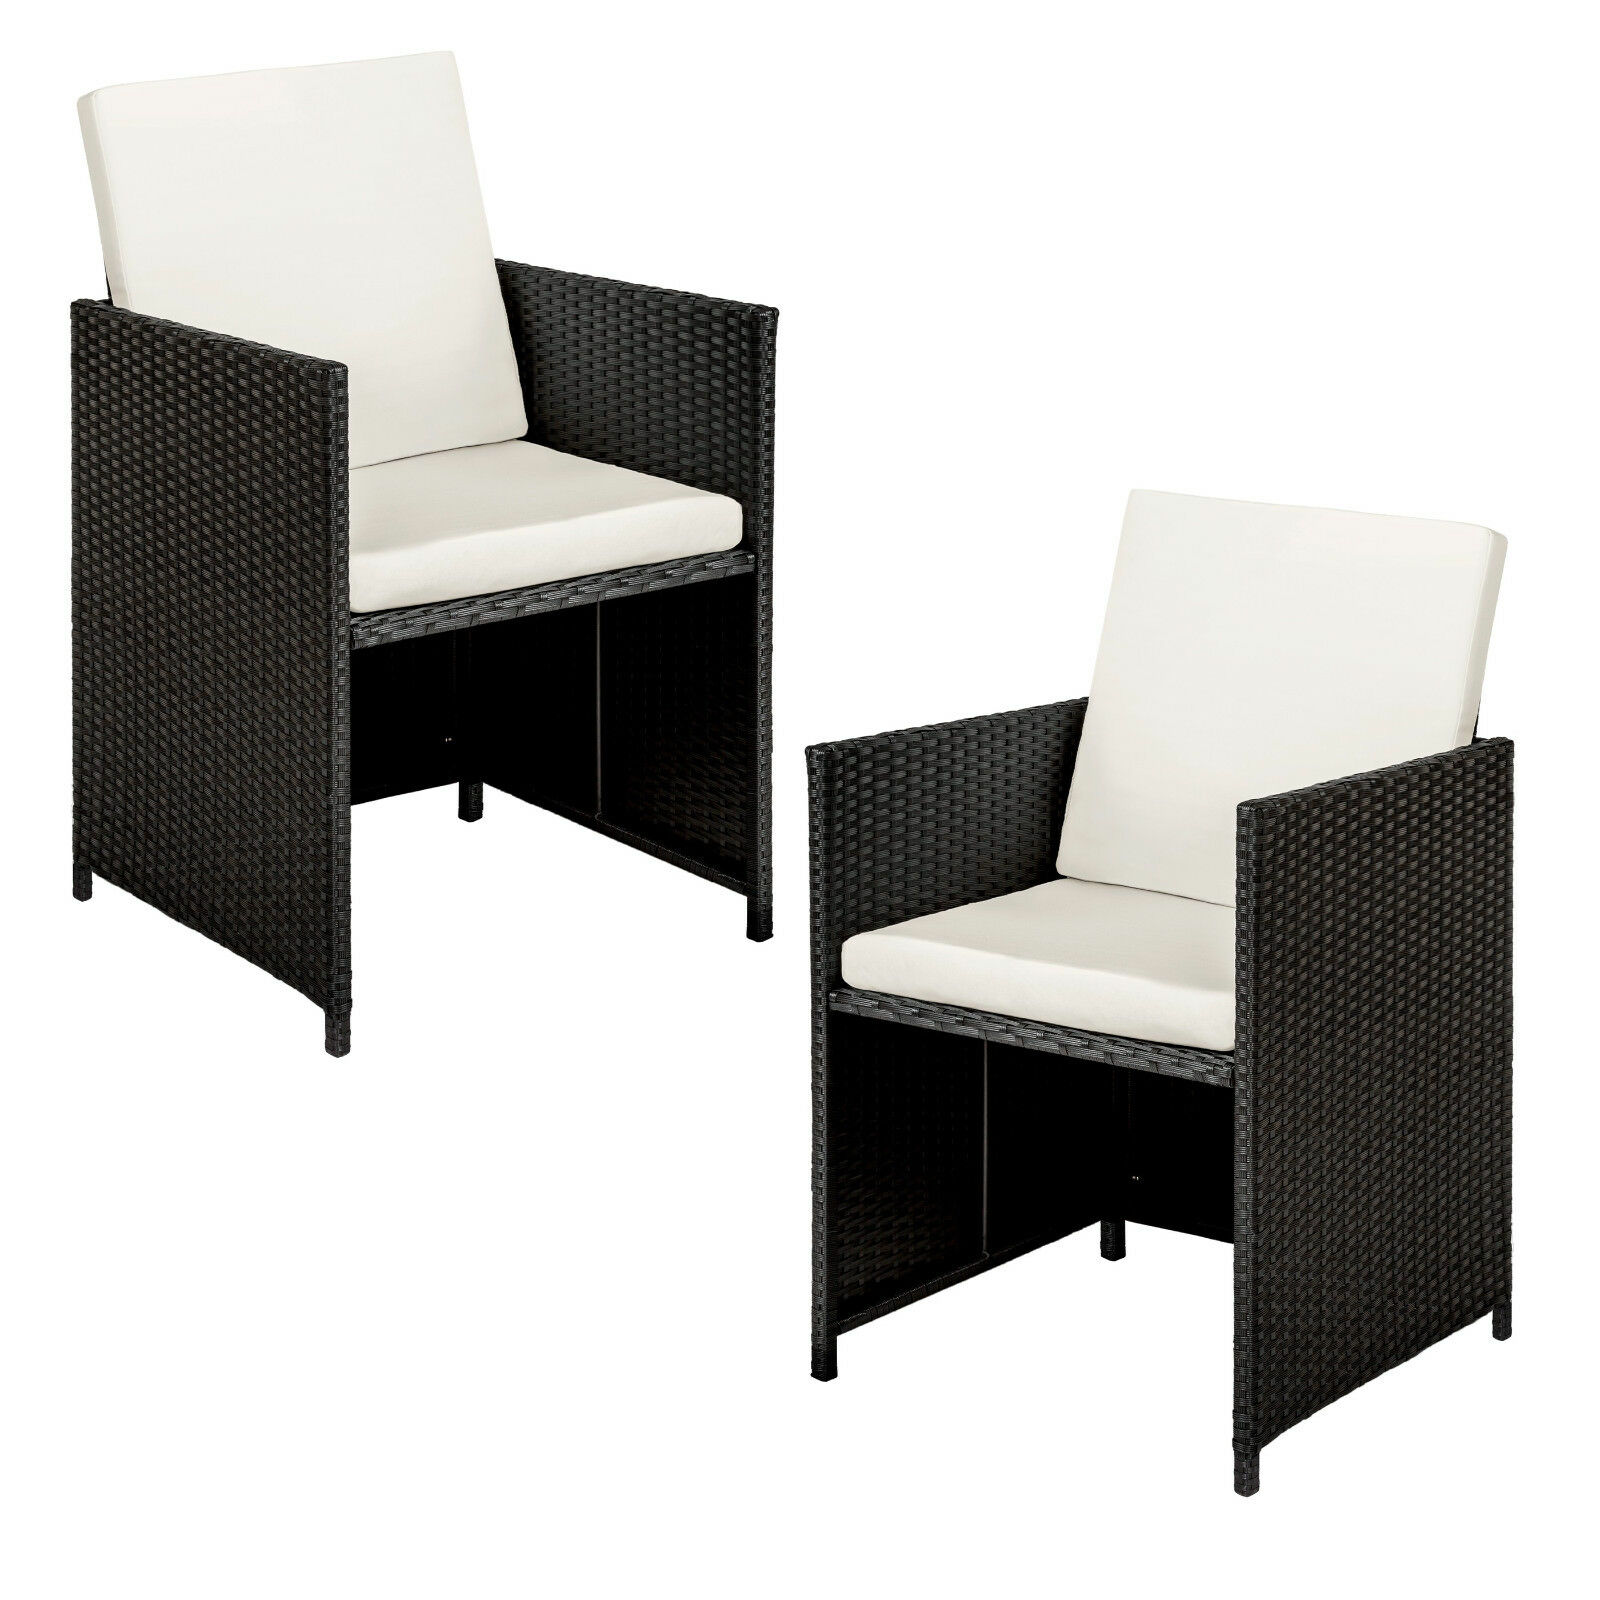 alu poly rattan sitzgruppe lounge rattanm bel. Black Bedroom Furniture Sets. Home Design Ideas